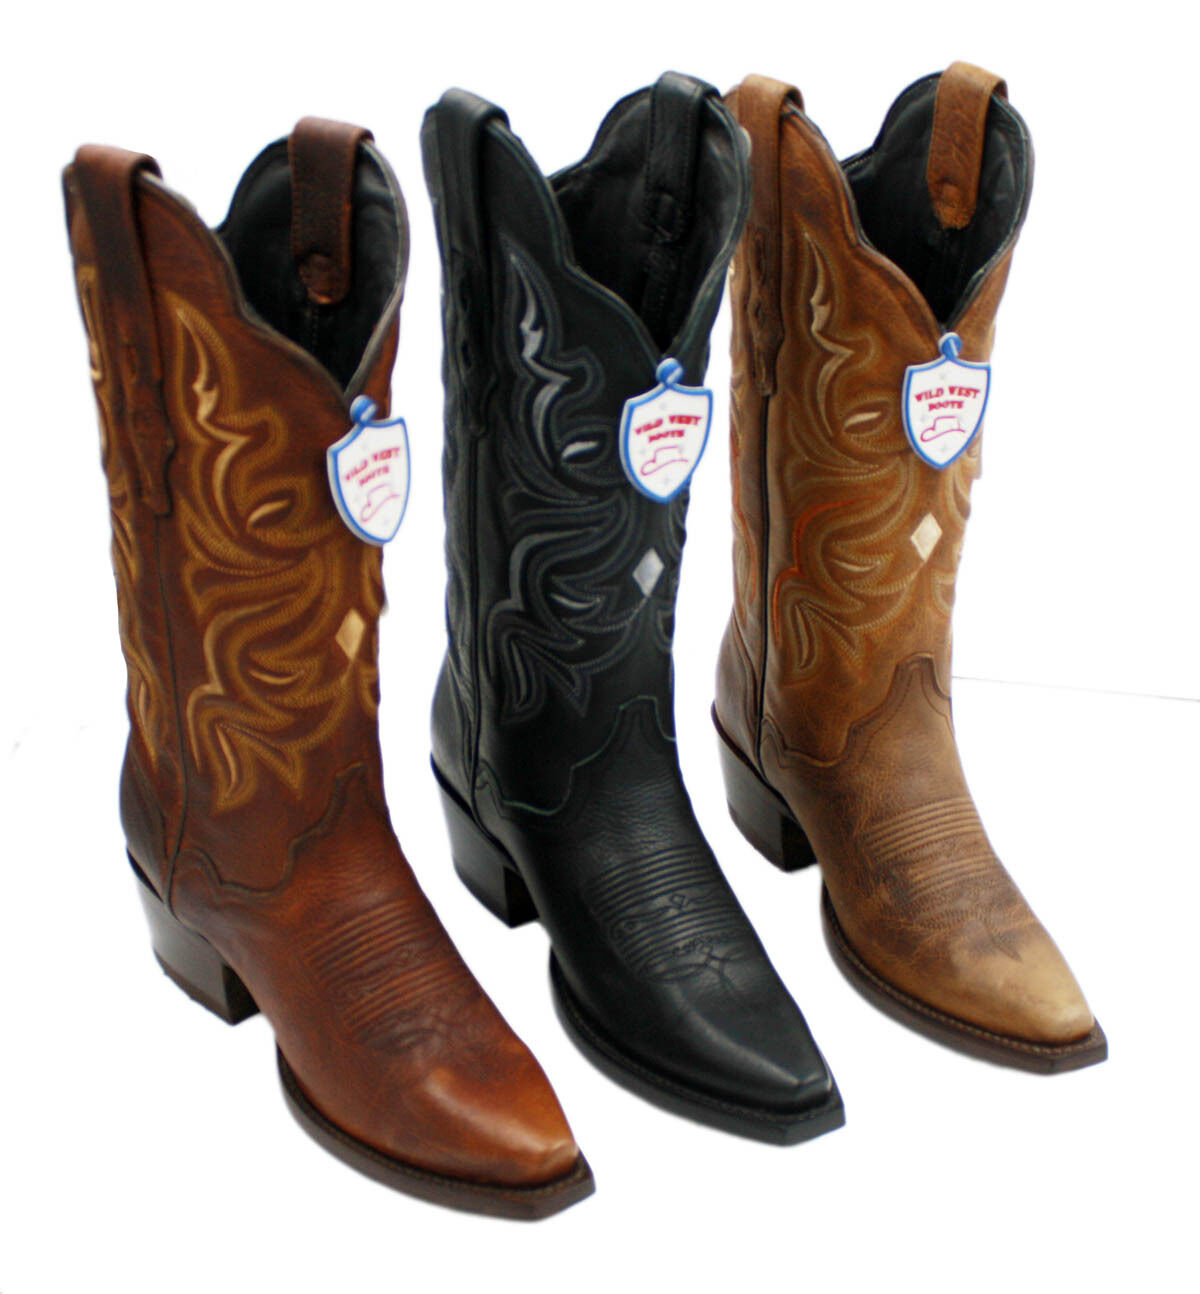 Ladies Genuine Wild West Leather Western Cowgirl Boots Style-2349940